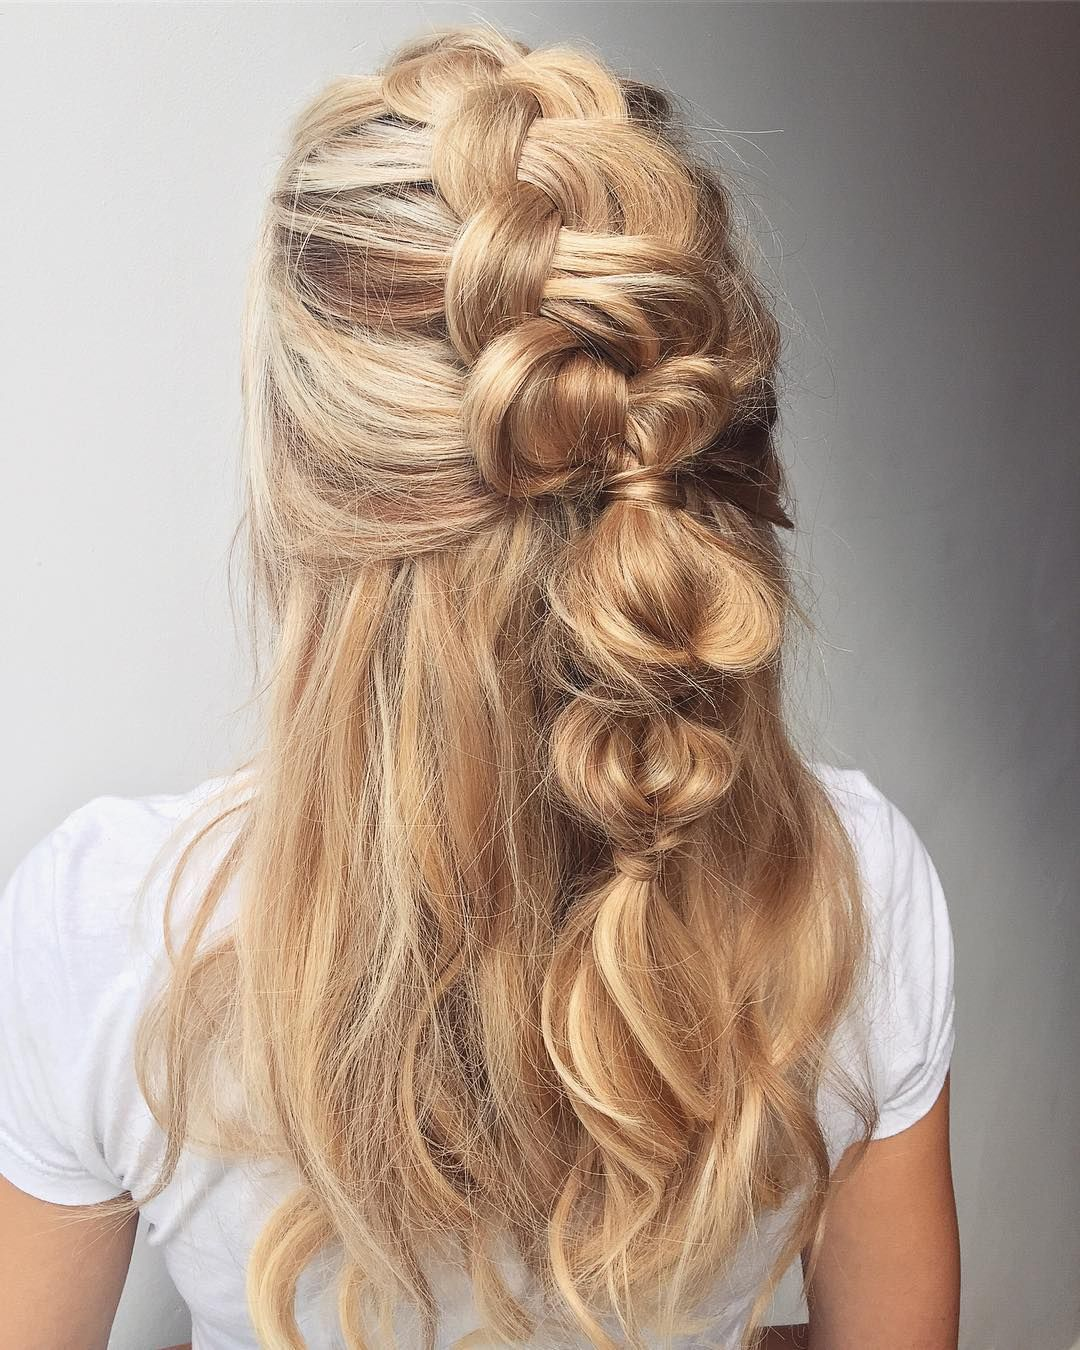 Bubble Braided Half Up Half Down Hairstyle Inspiration Easy Hairstyles For Long Hair Down Hairstyles Half Up Half Down Hair